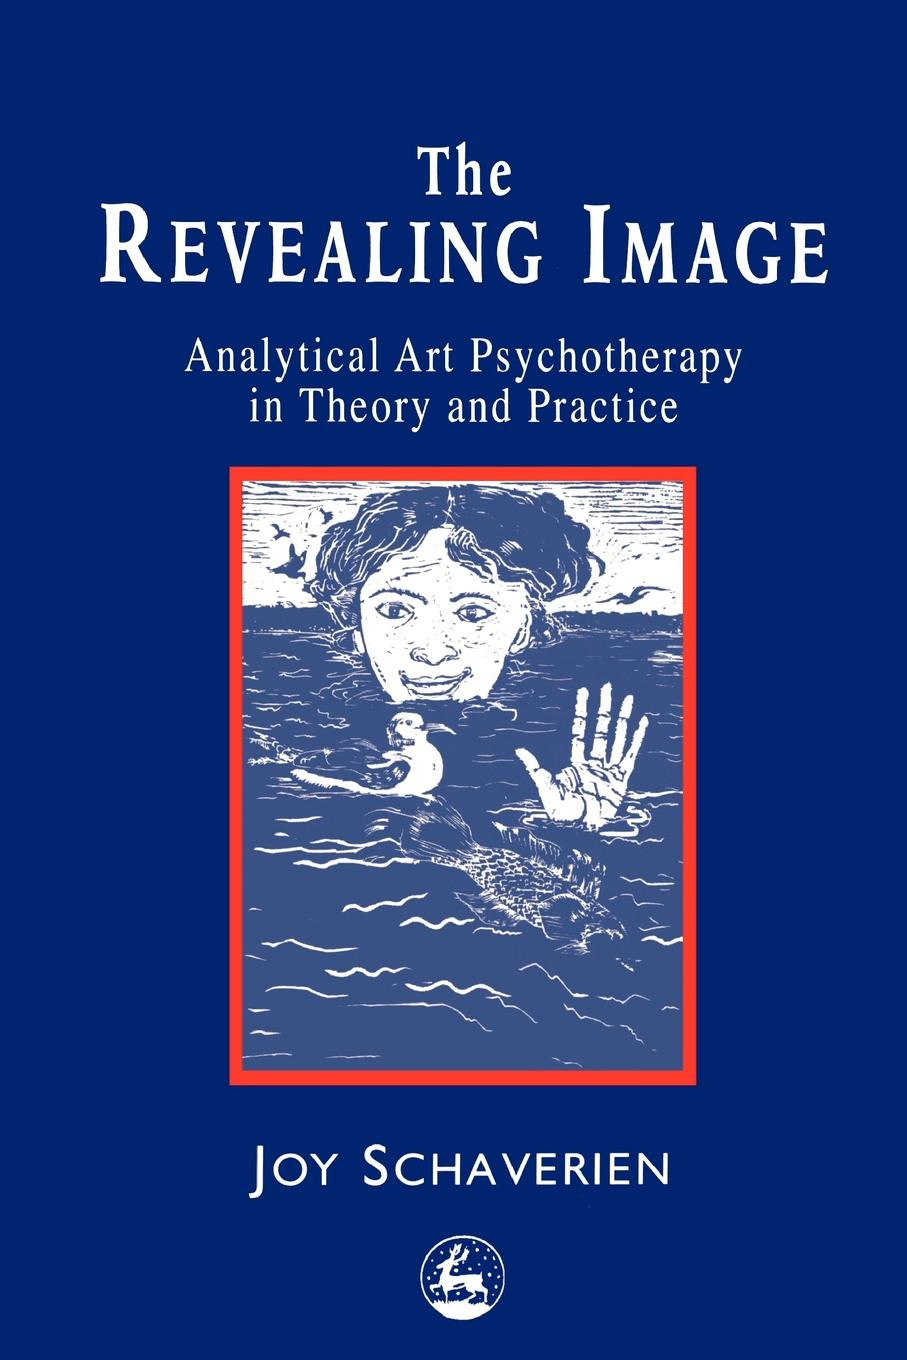 Joy Schaverien The Revealing Image. Cultivating the Artist Identity in Art Therapist